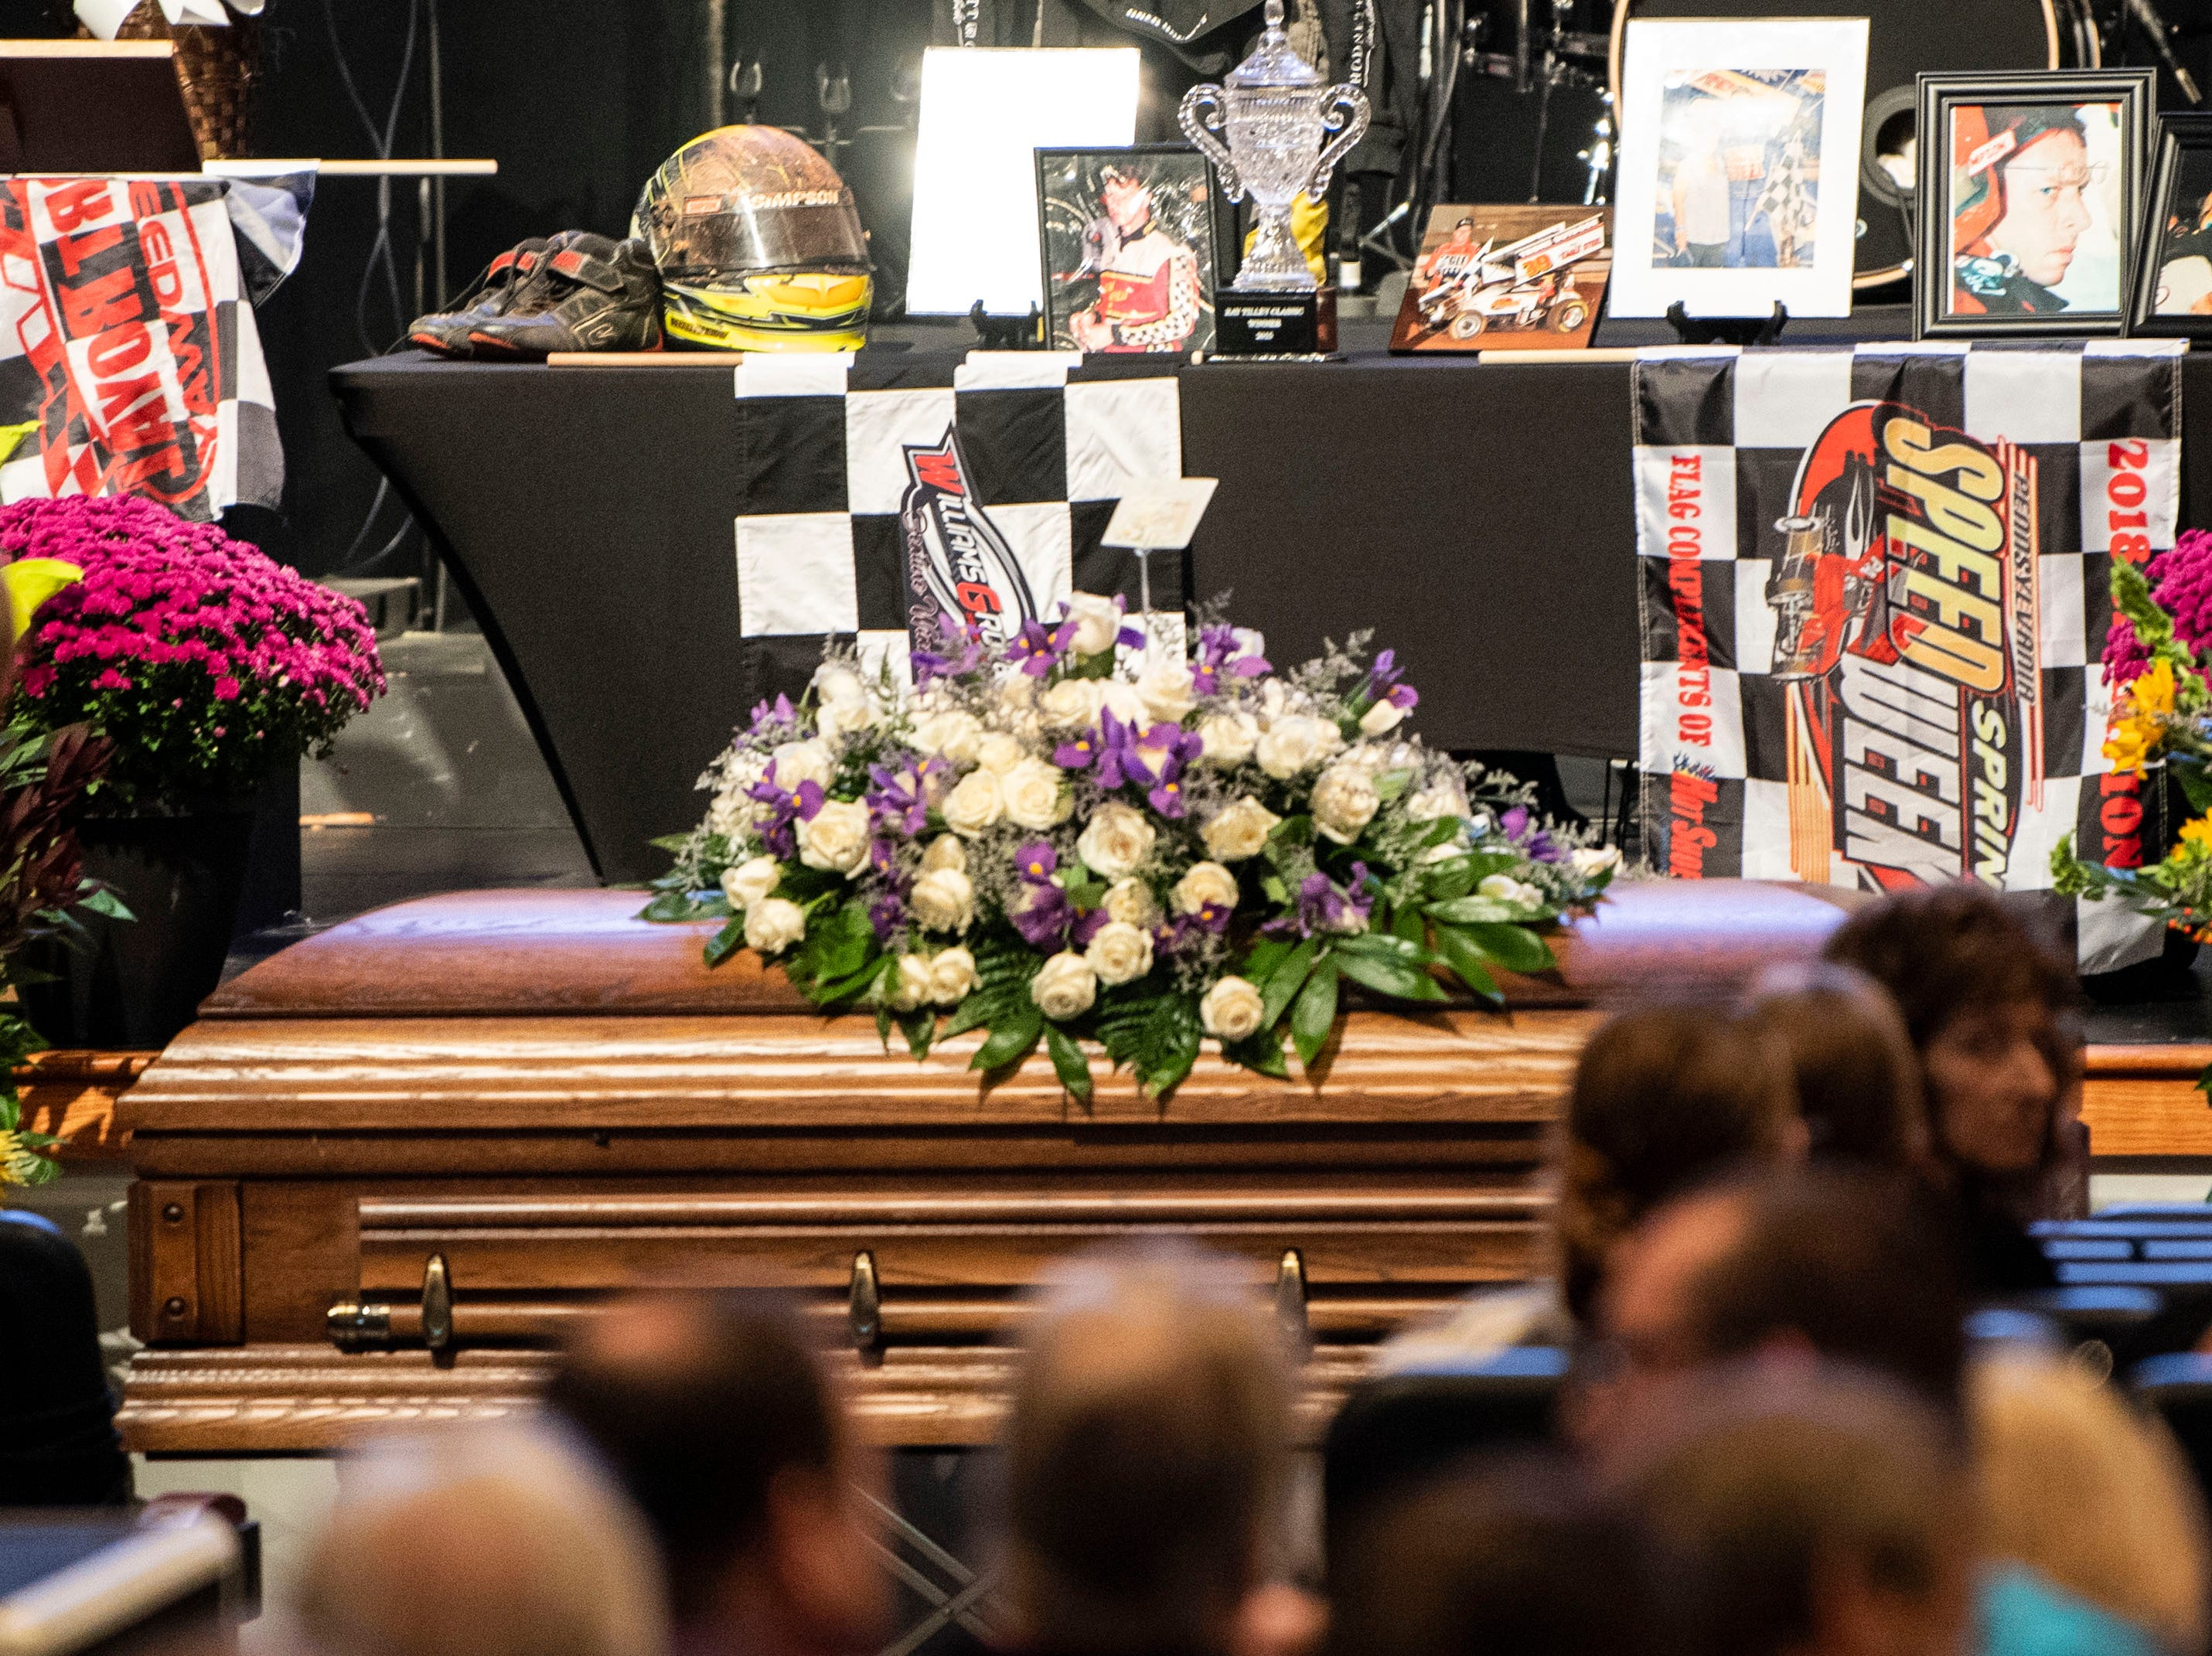 Flowers, checkered flags, pictures and trophies sit behind the casket of Greg Hodnett during his funeral on Wednesday, September 26, 2018. Hodnett, a local racing legend, died on September 20 at BAPS Motor Speedway.